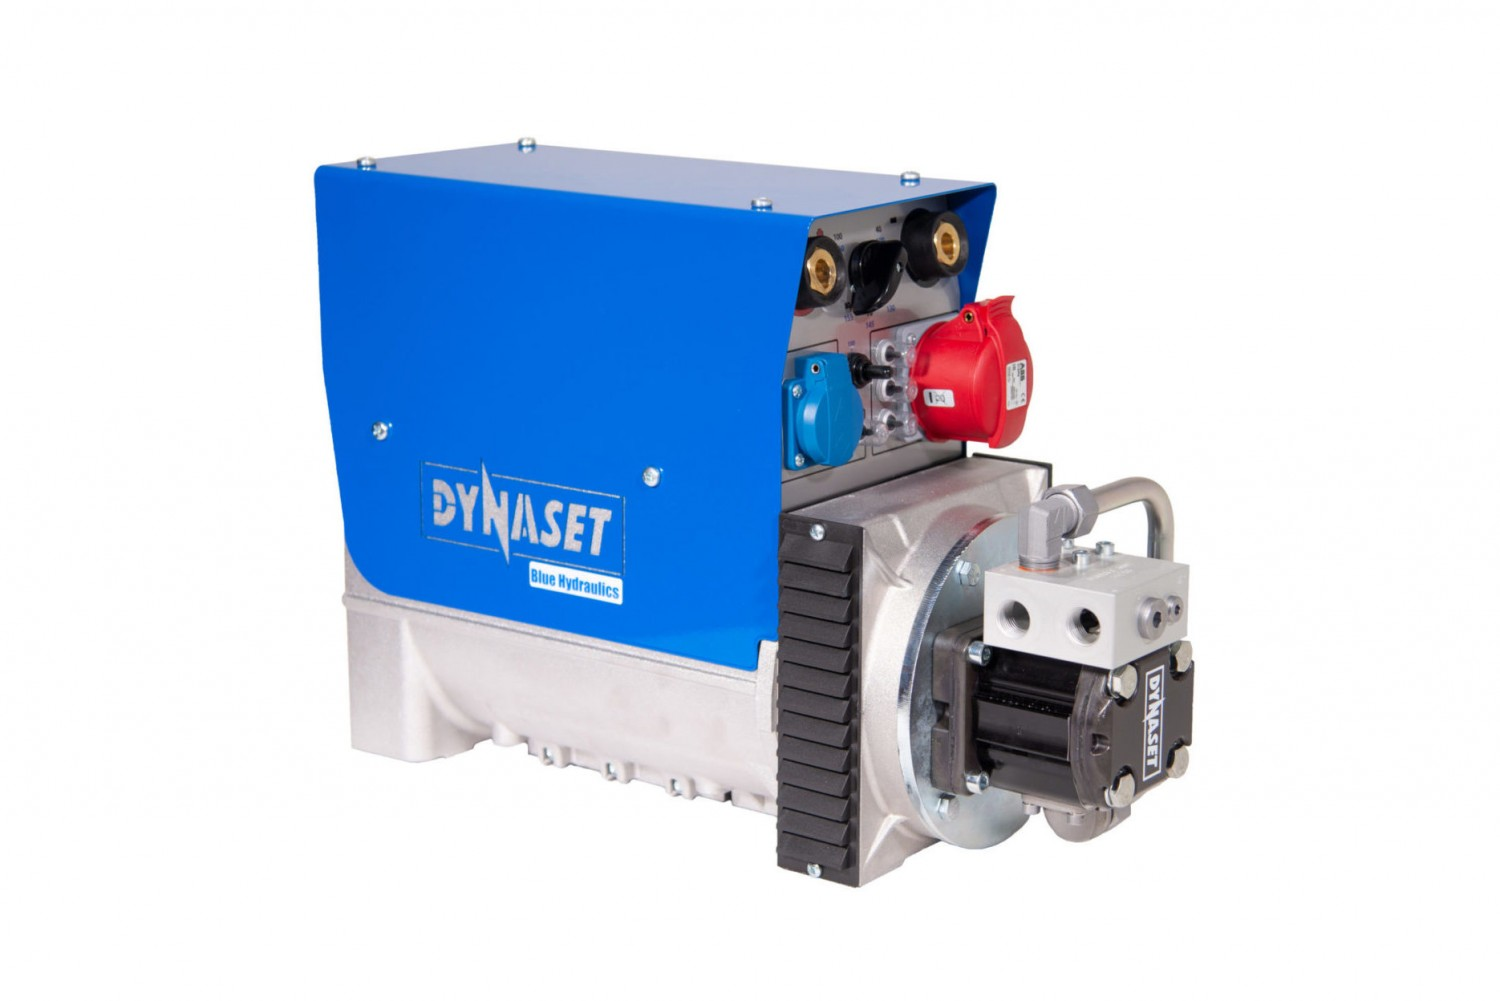 small silent welder generator with more power than large diesel tow-behinds